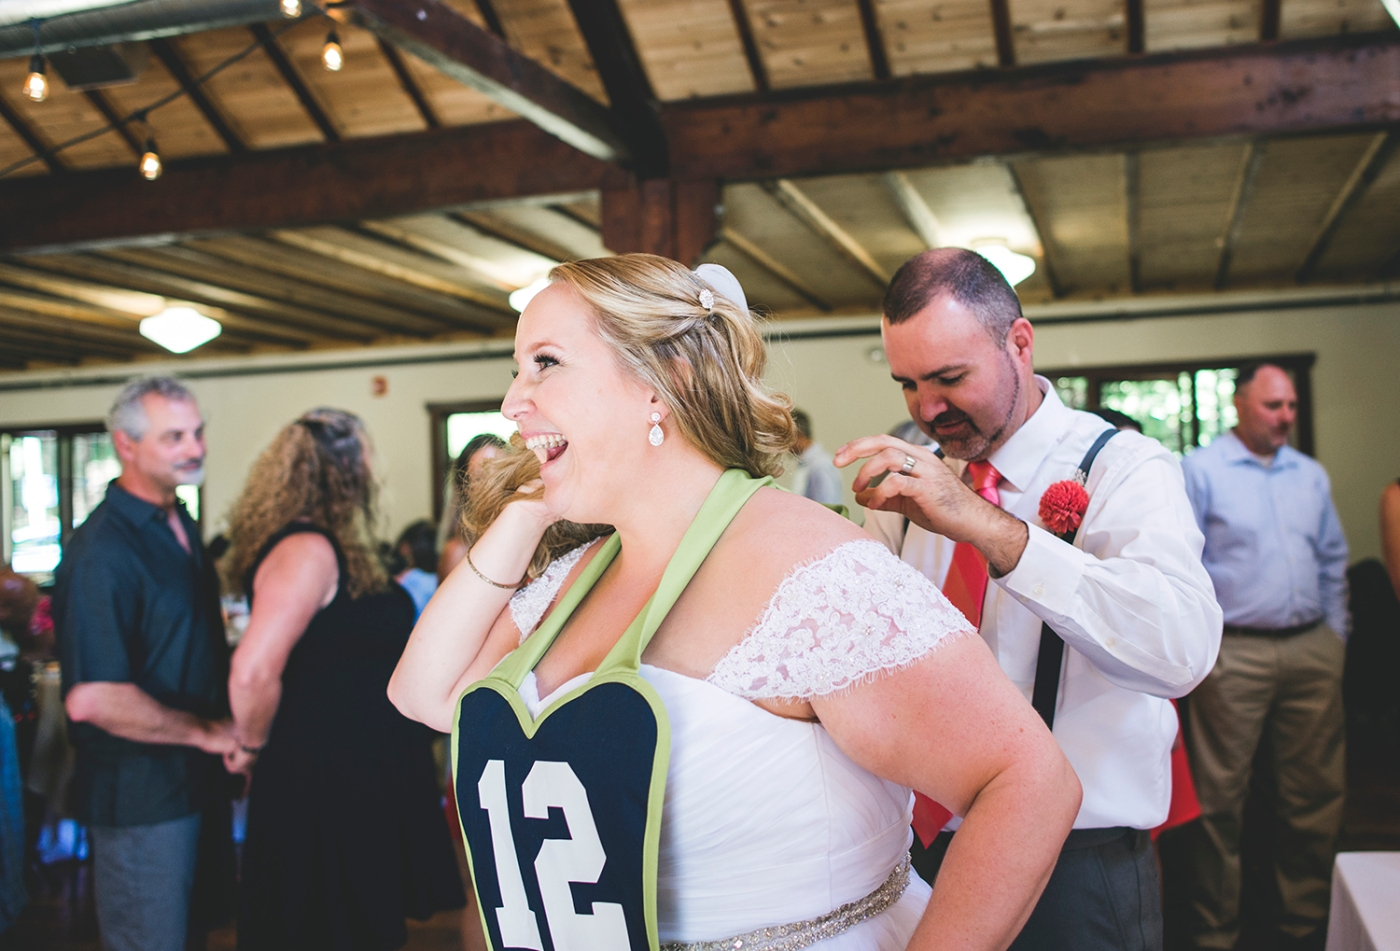 Jane_Speleers_Seattle_photography_Katie_and_Steve_2016_Des_Moines_Marina_Wedding_DSC_1948